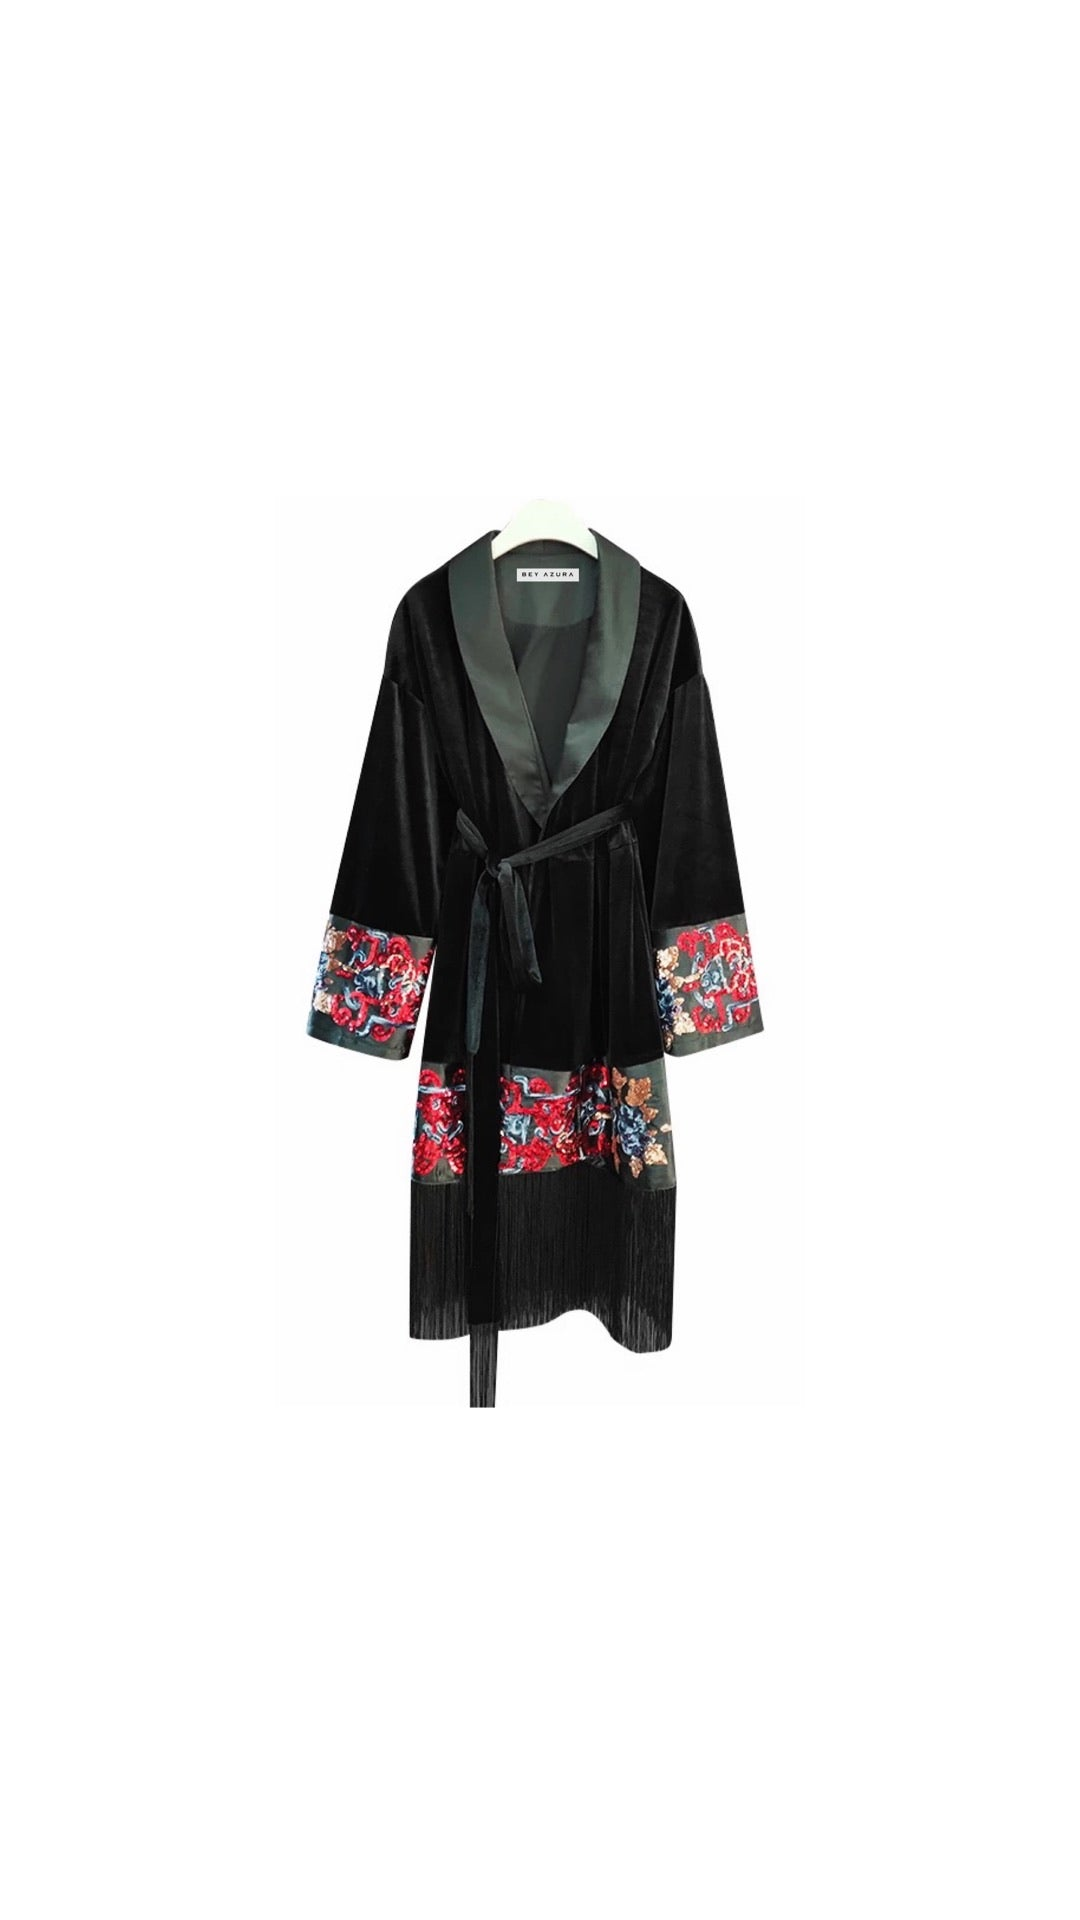 Velvet Embroidered Tassel Hem Belted Trench Dress - BEYAZURA.COM